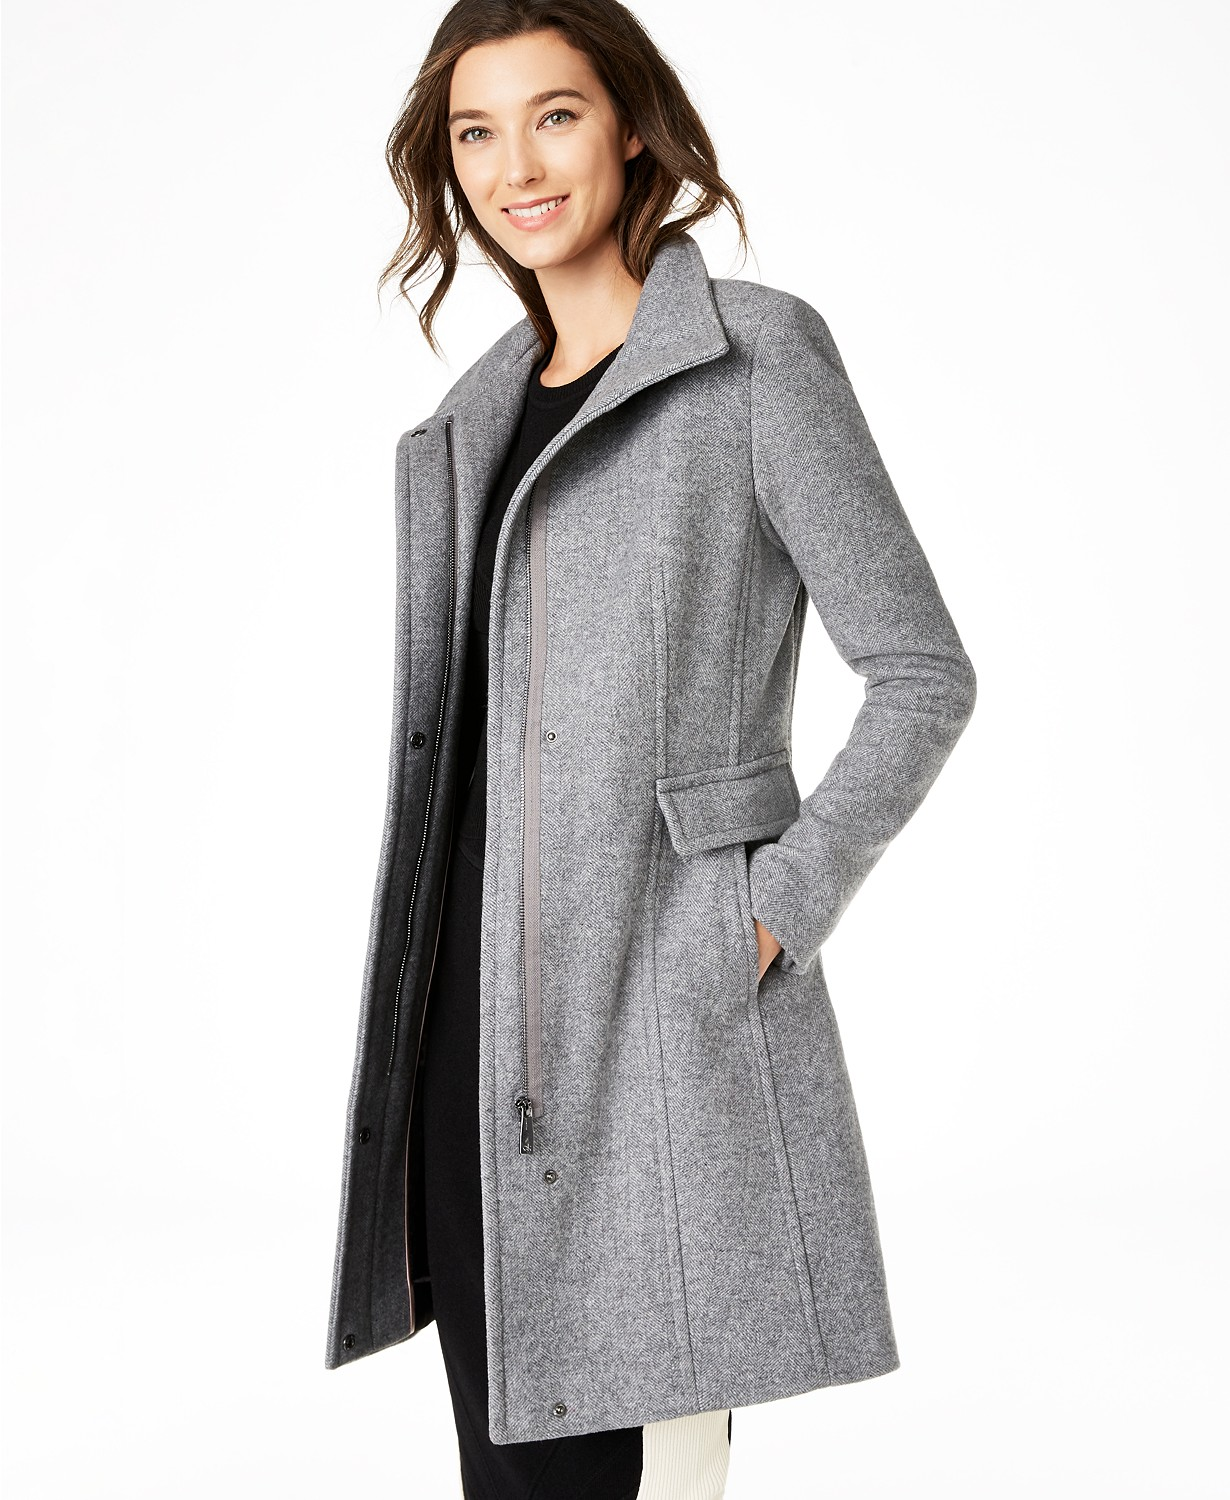 COLE HAAN, MICHAEL KORS, CALVIN KLEIN & MORE WOMEN'S COATS ALL 50% OFF!